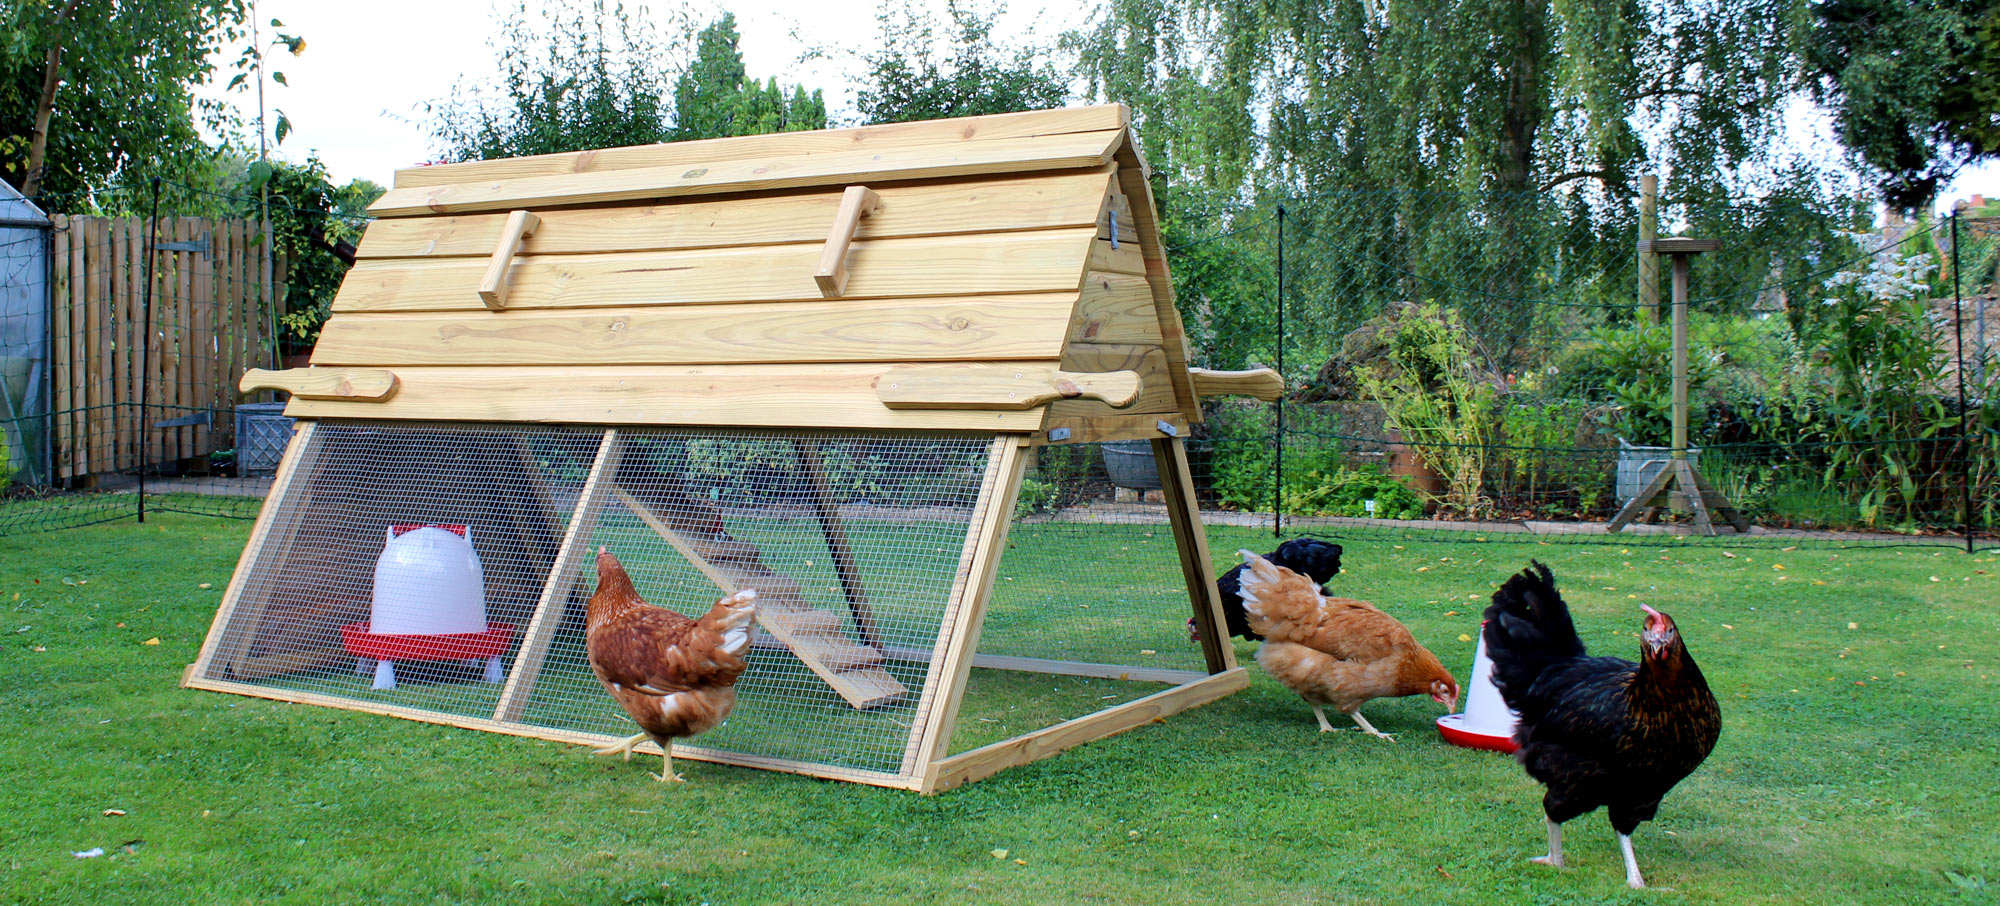 How to Make a Chicken Coop